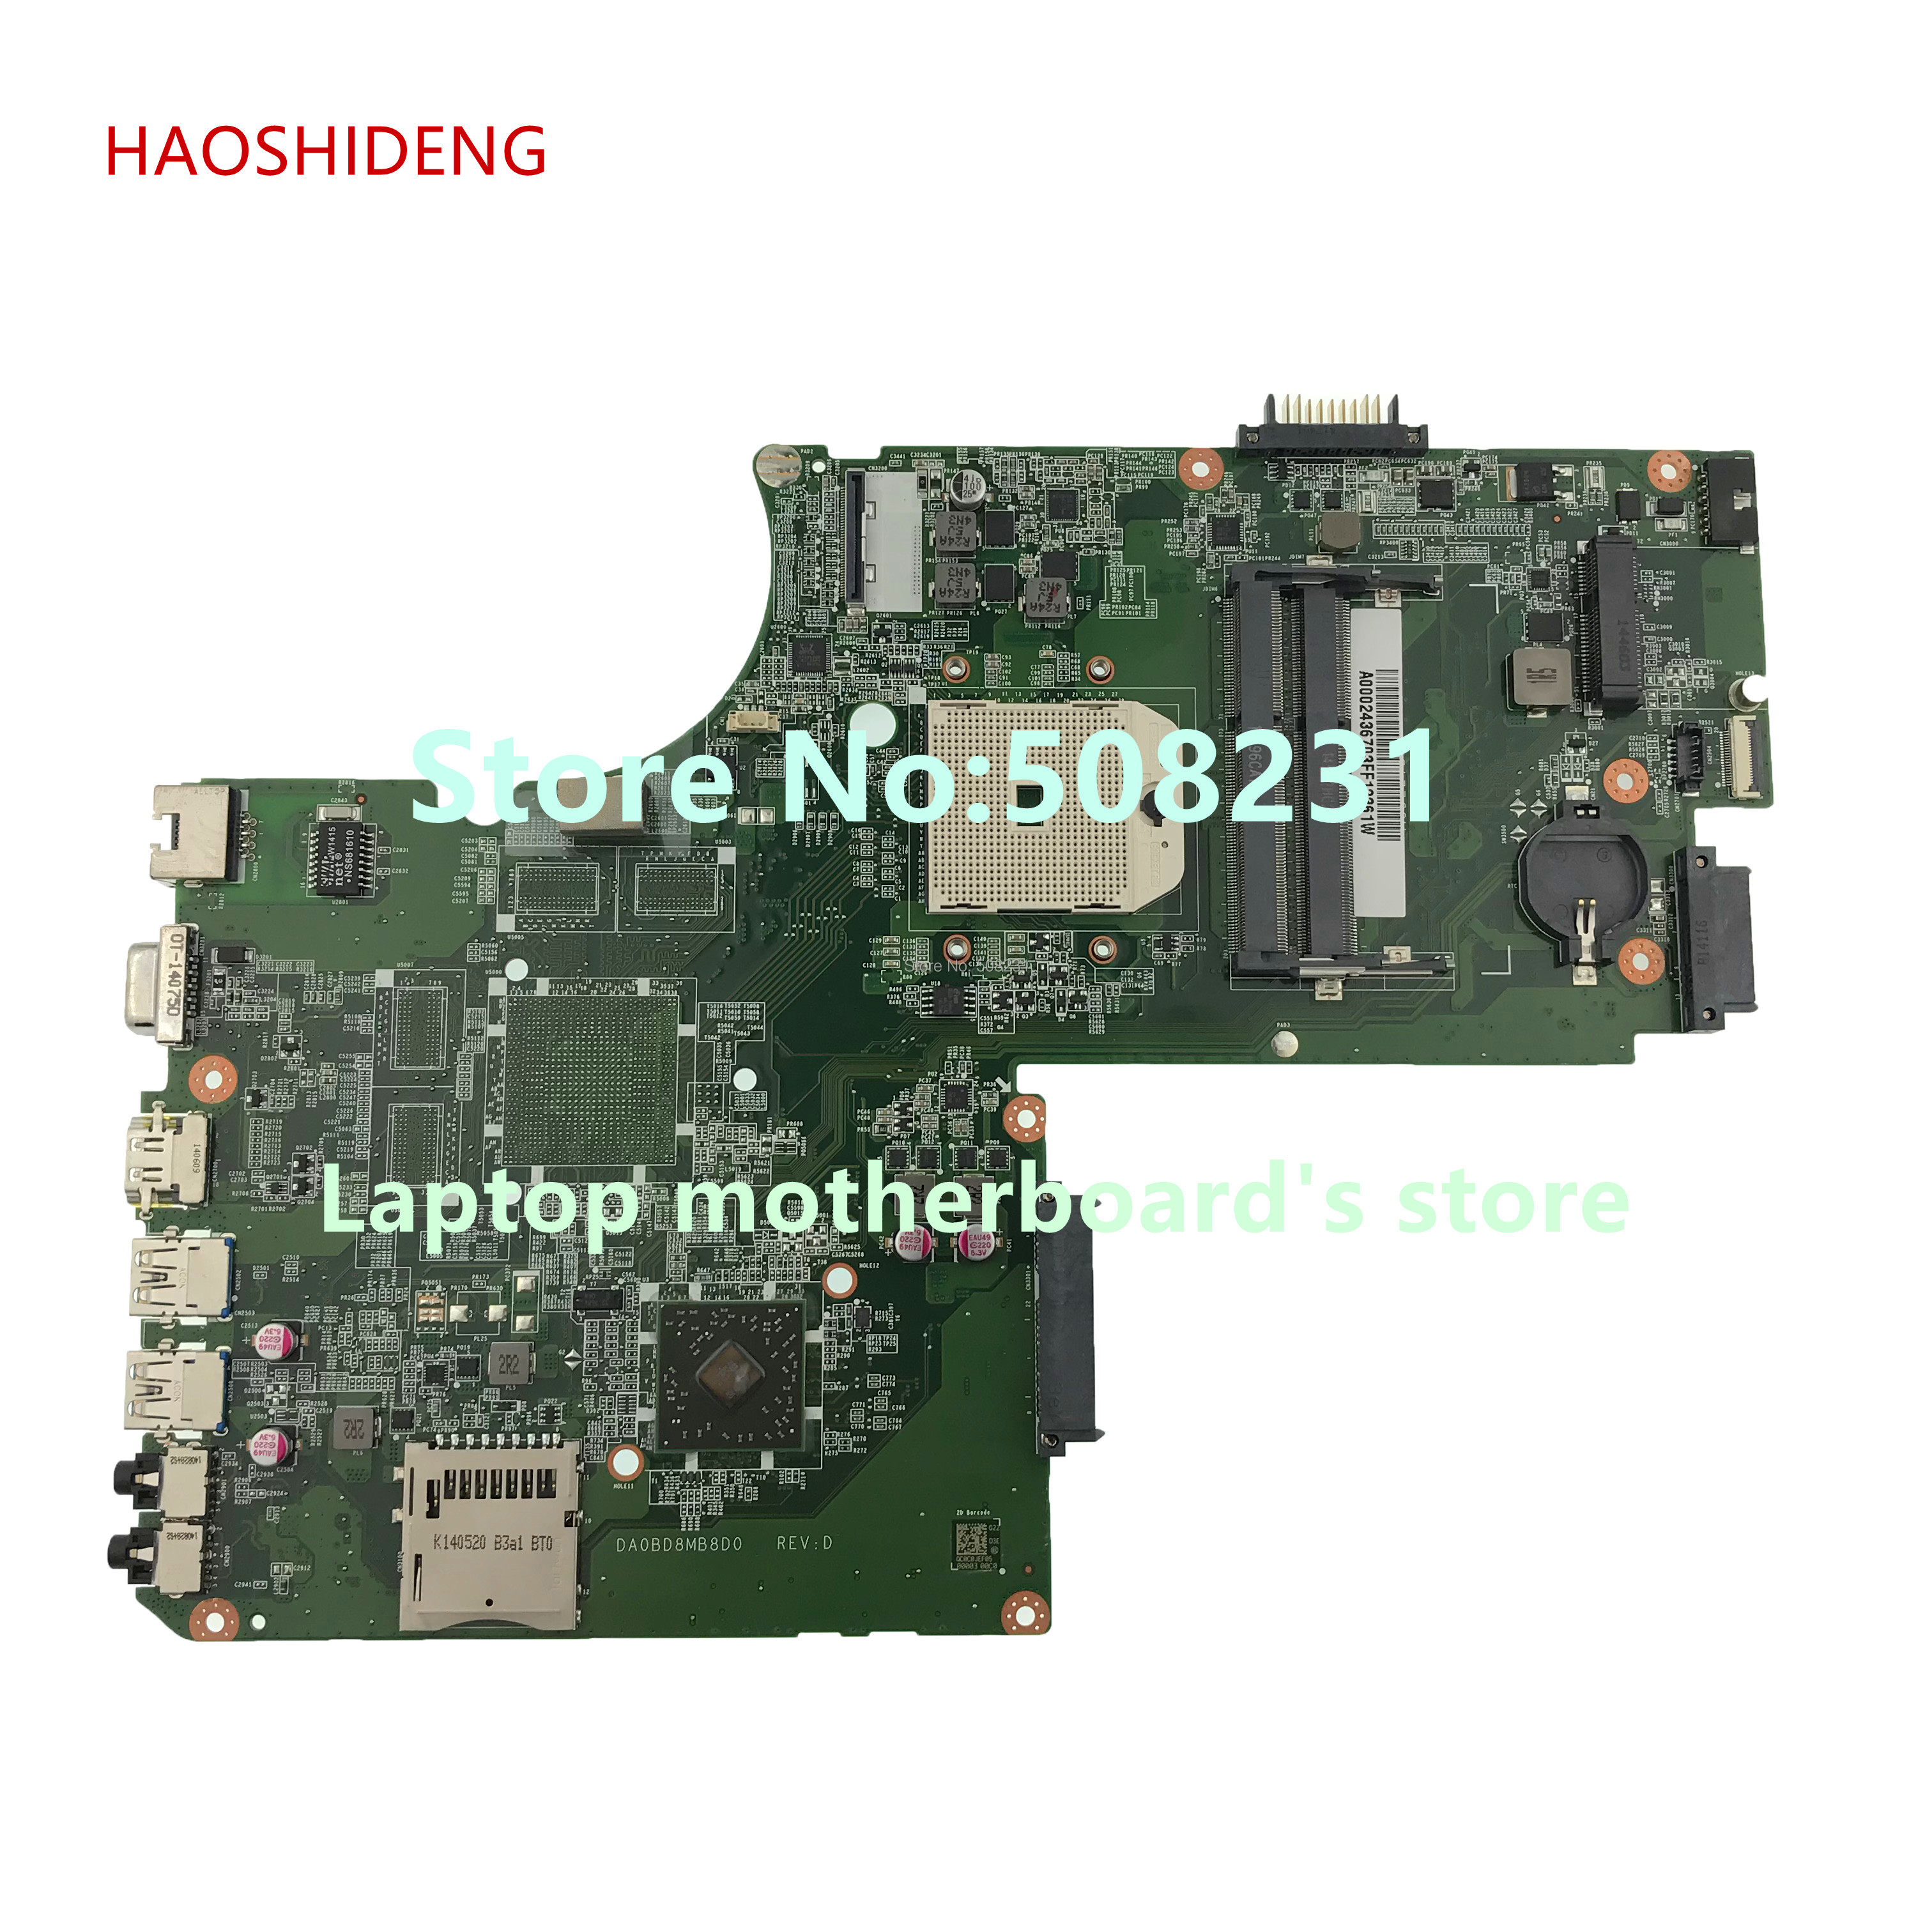 HAOSHIDENG A000243670 DA0BD8MB8D0 mainboard for Toshiba Satellite S70D L70D S75D L75D C70 series Laptop Motherboard fully Tested цена и фото